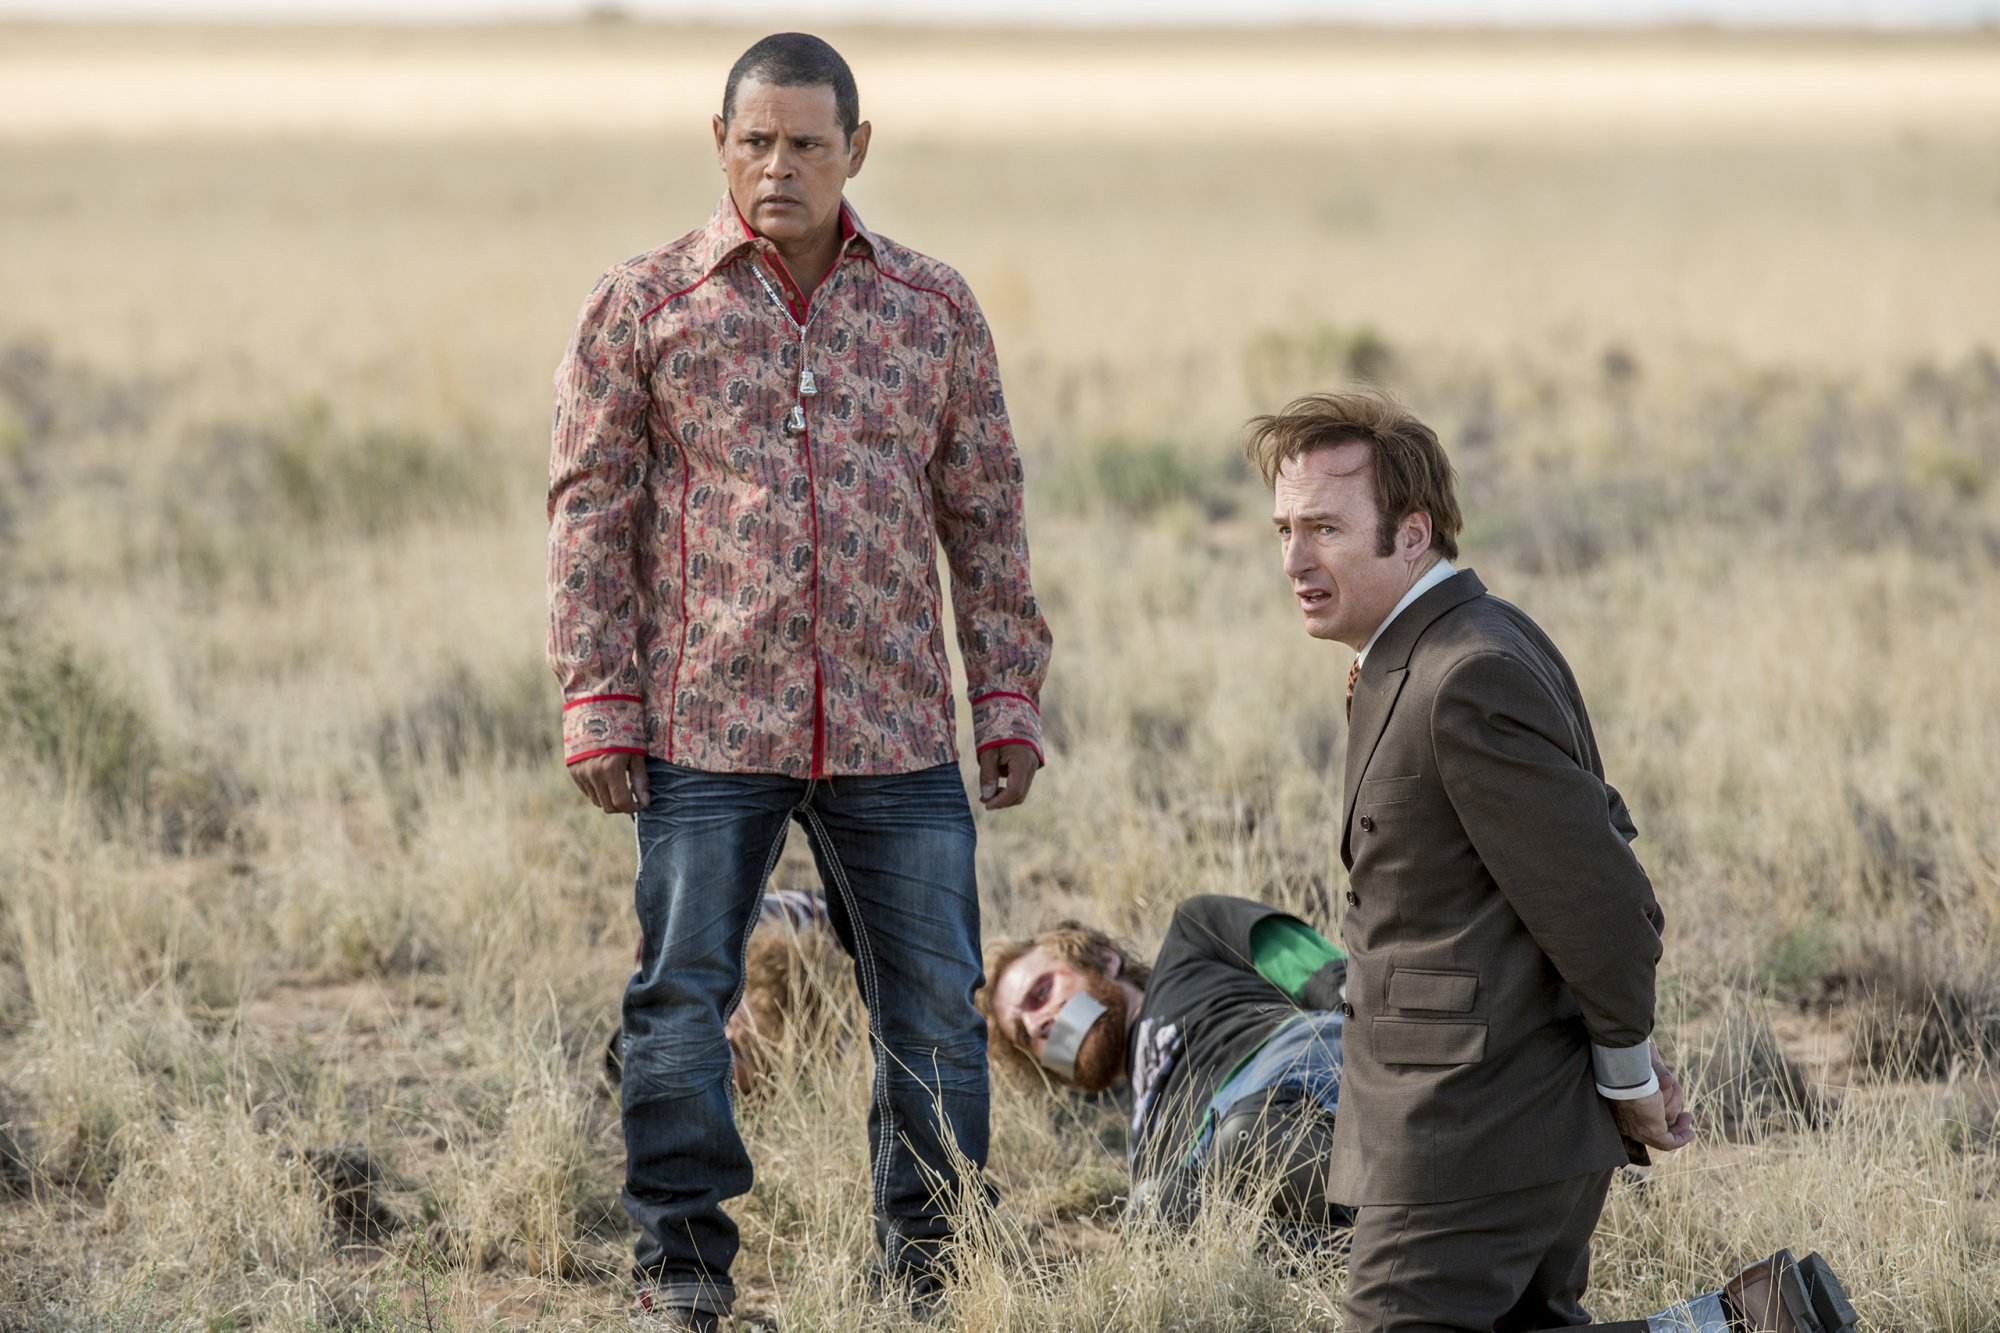 Tuco Salamanca & Jimmy McGill